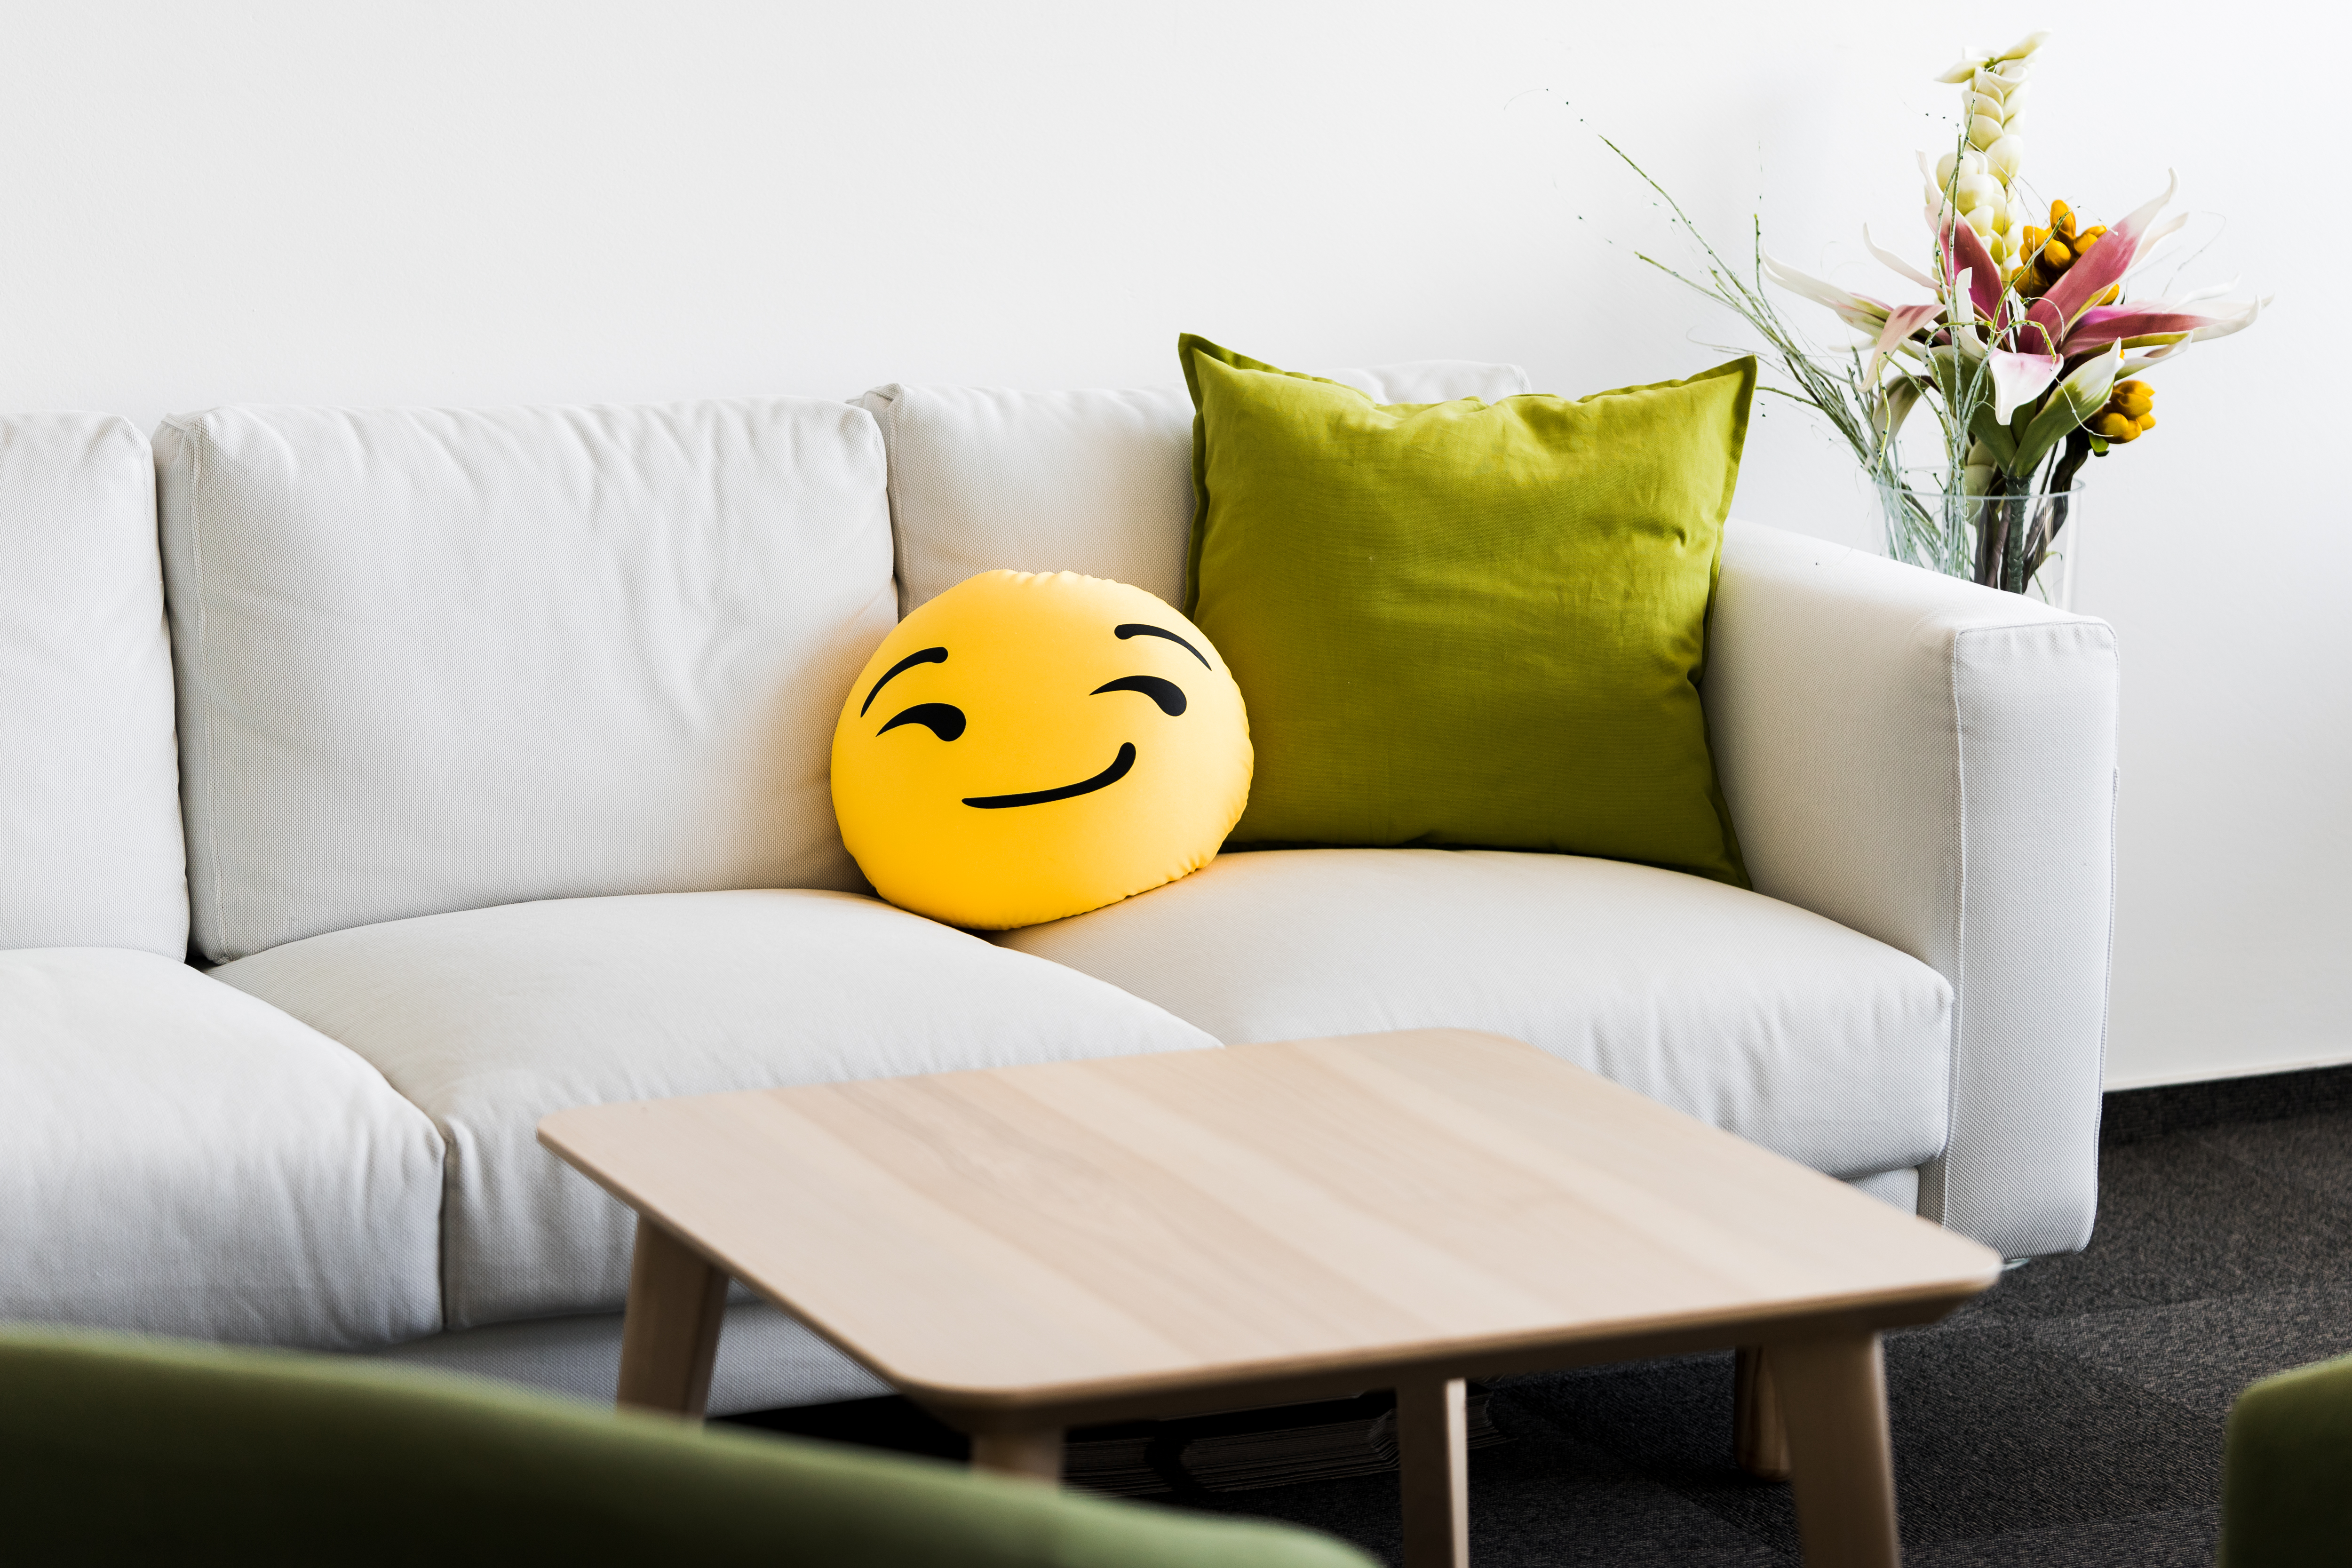 White Office Couch with Funny Emoji Pillow Free Stock Photo | picjumbo